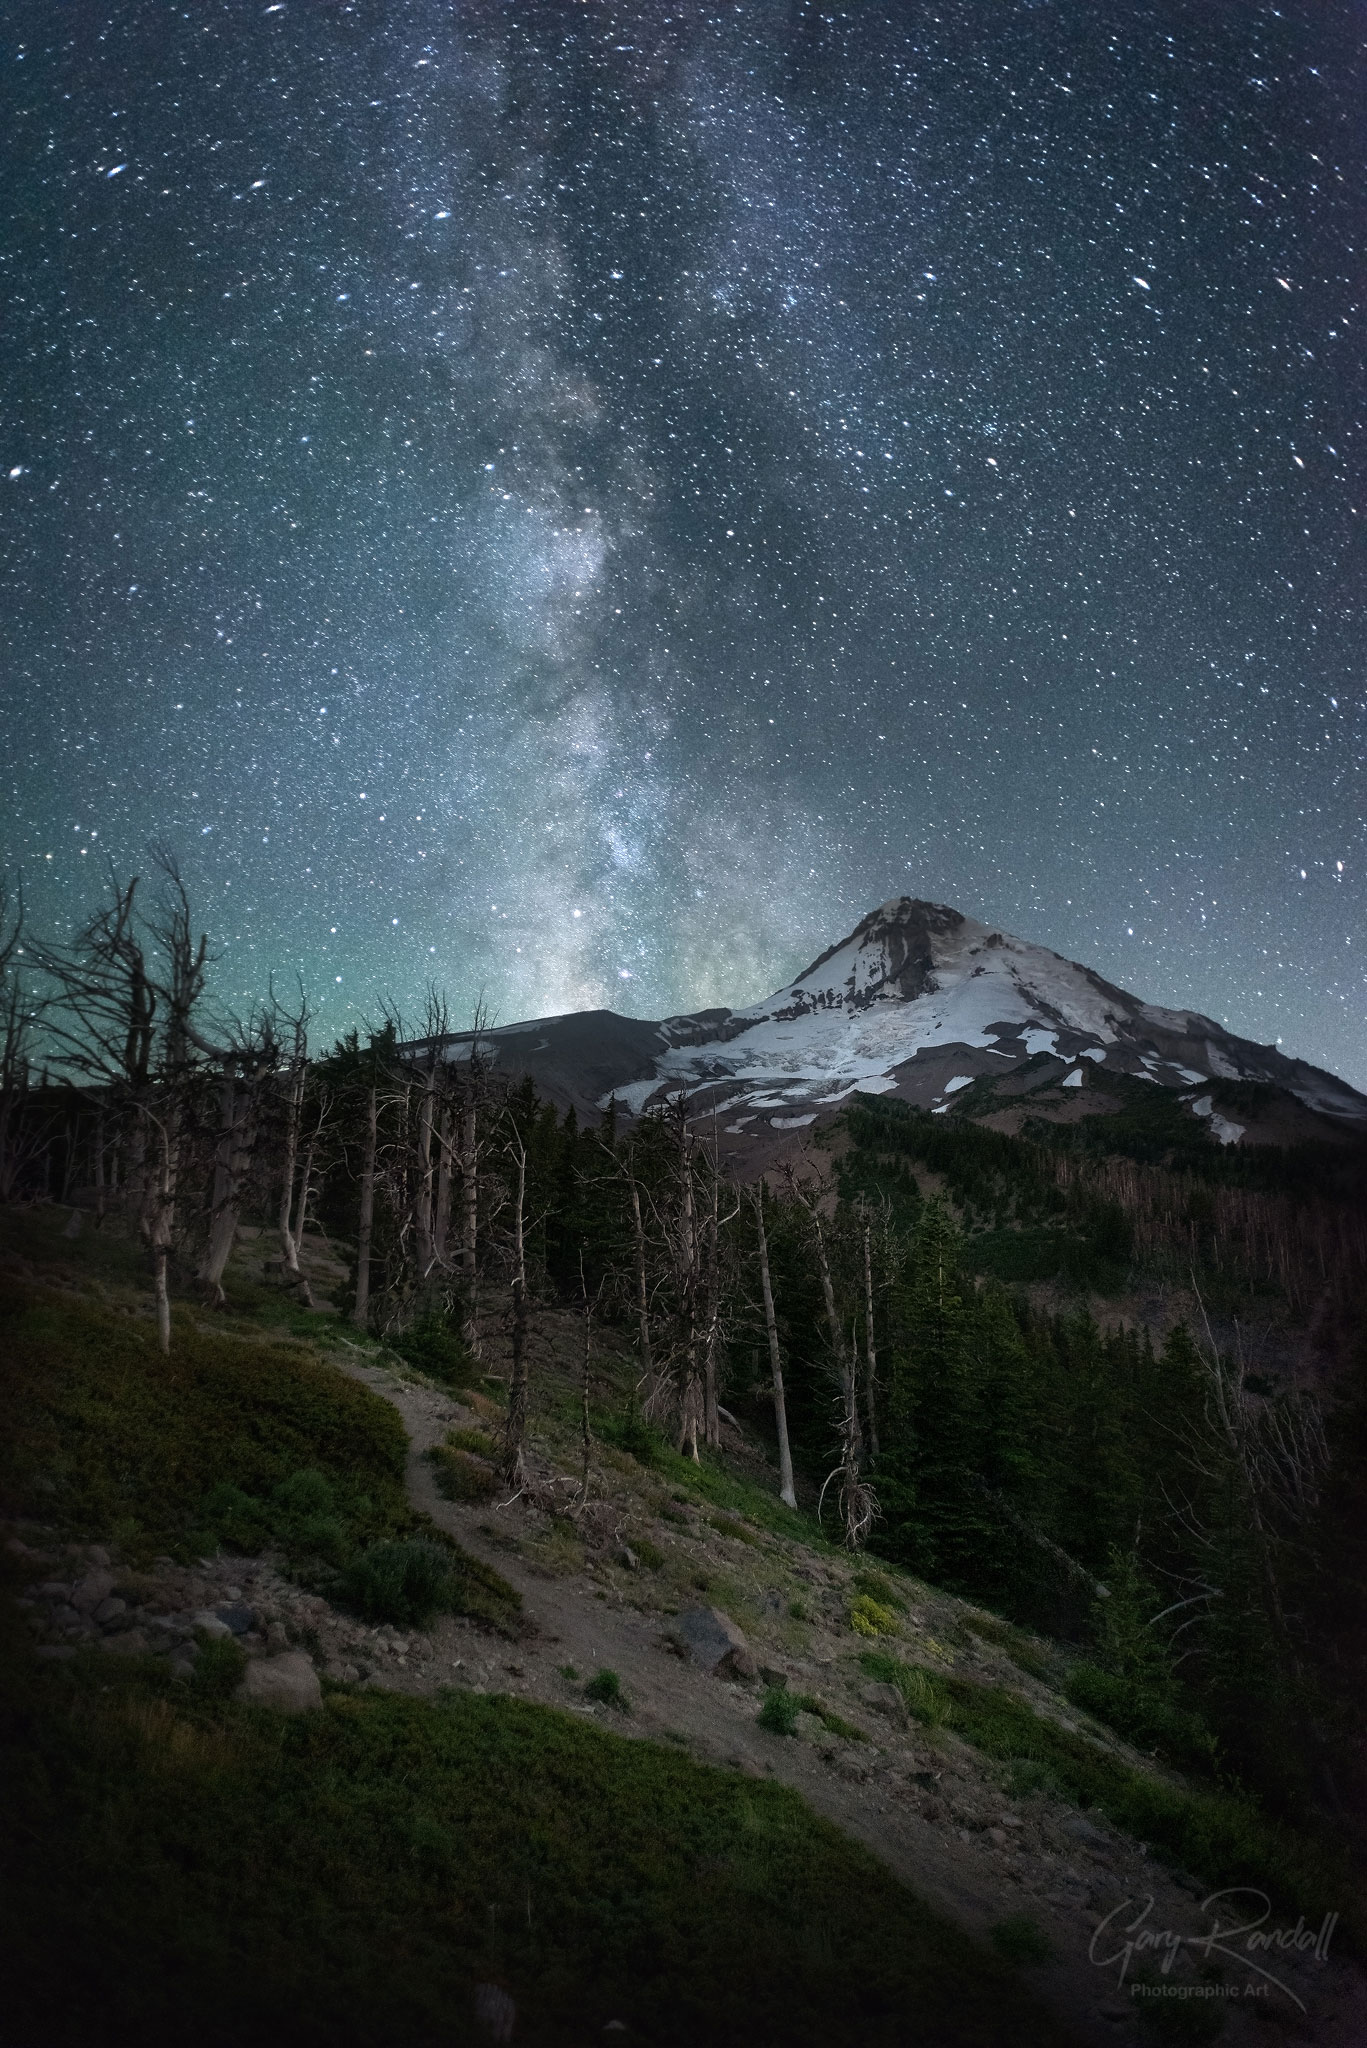 The Milky way over Mount Hood